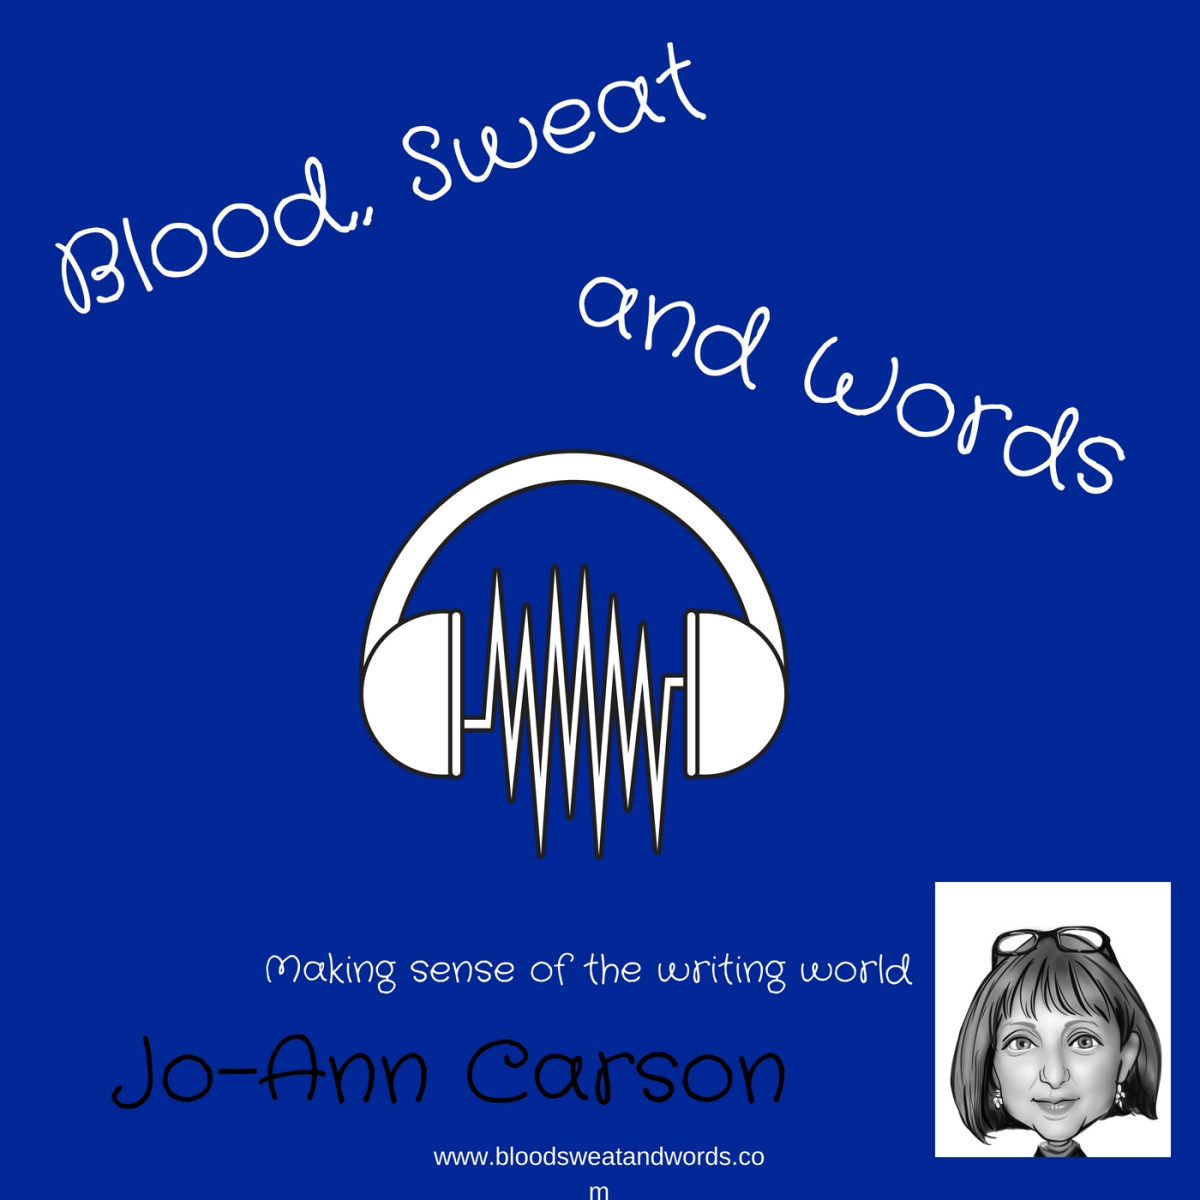 My BS and Words Podcast is Coming Together#Mondayblogs